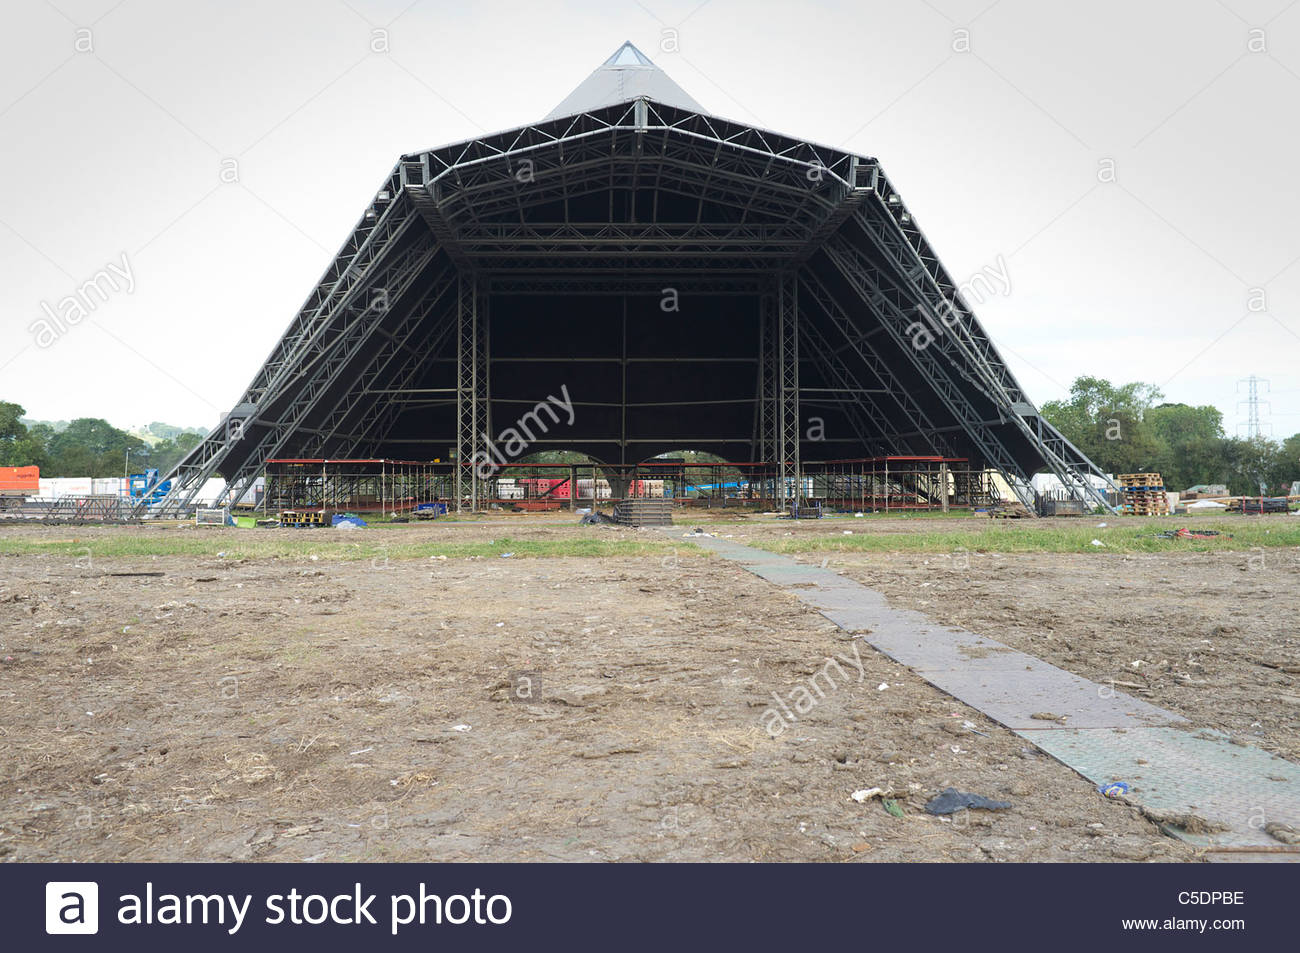 The Pyramid stage at Glastonbury festival site, nine days after the last 2011 performance. Somerset, UK. Stock Photo